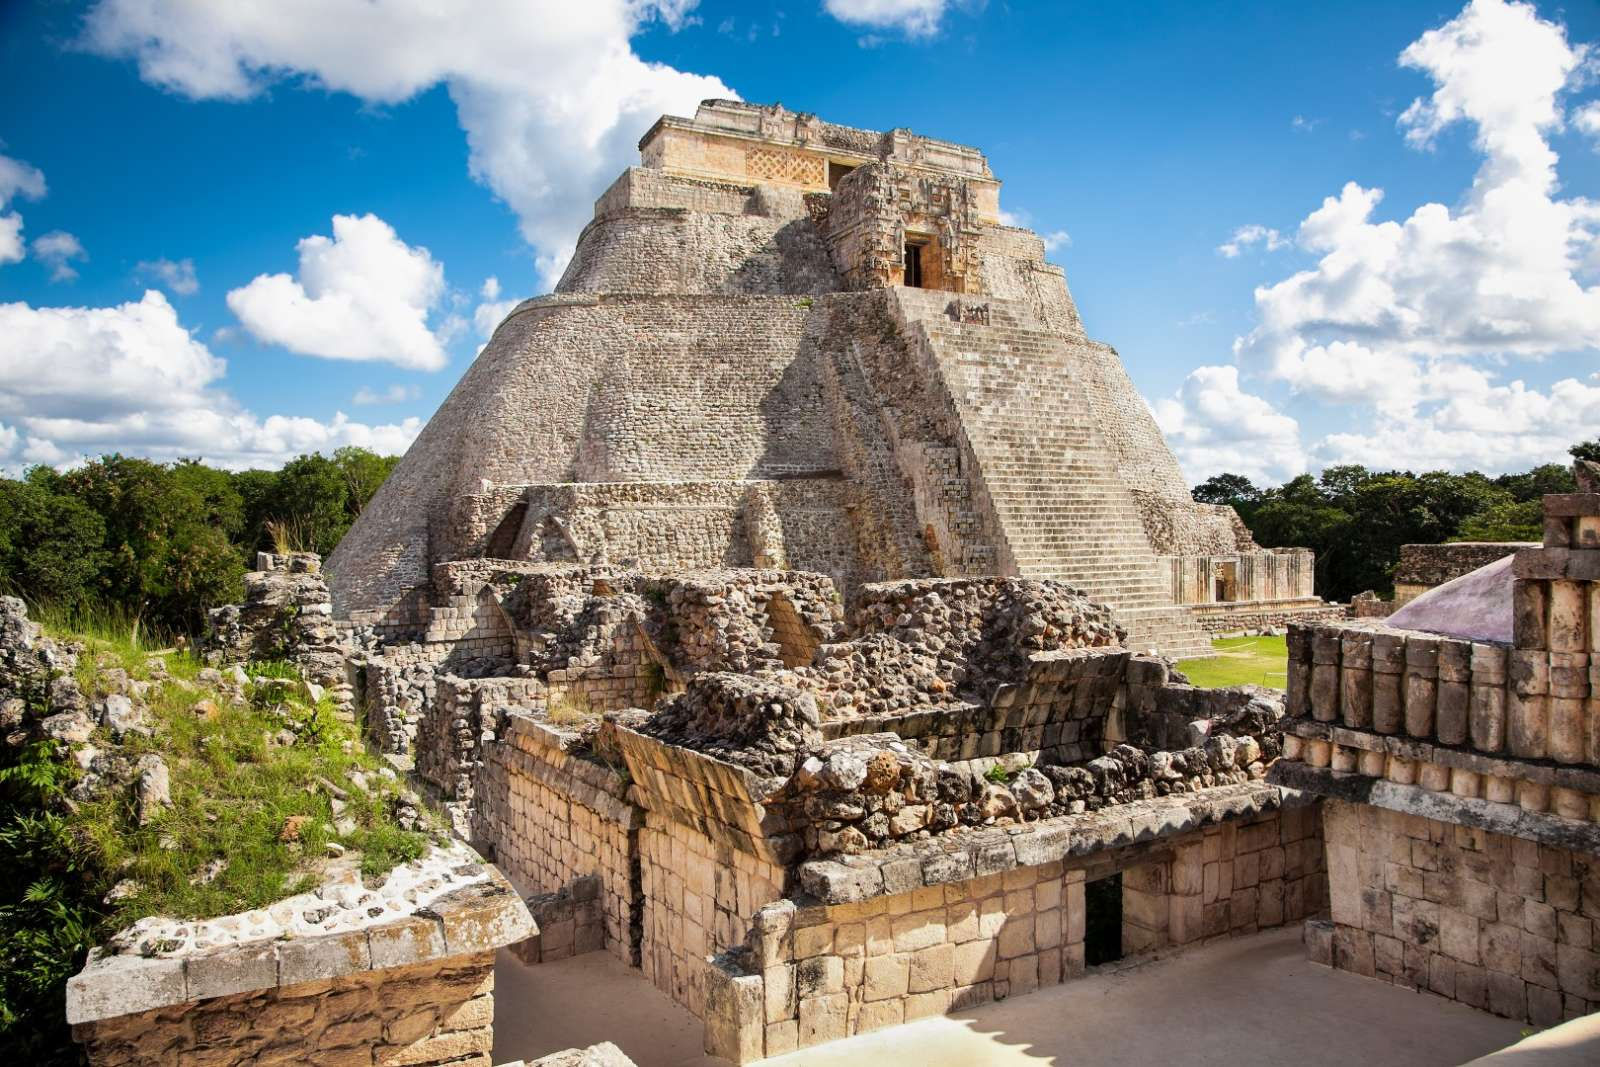 Temple of the magician at Uxmal, Mexico